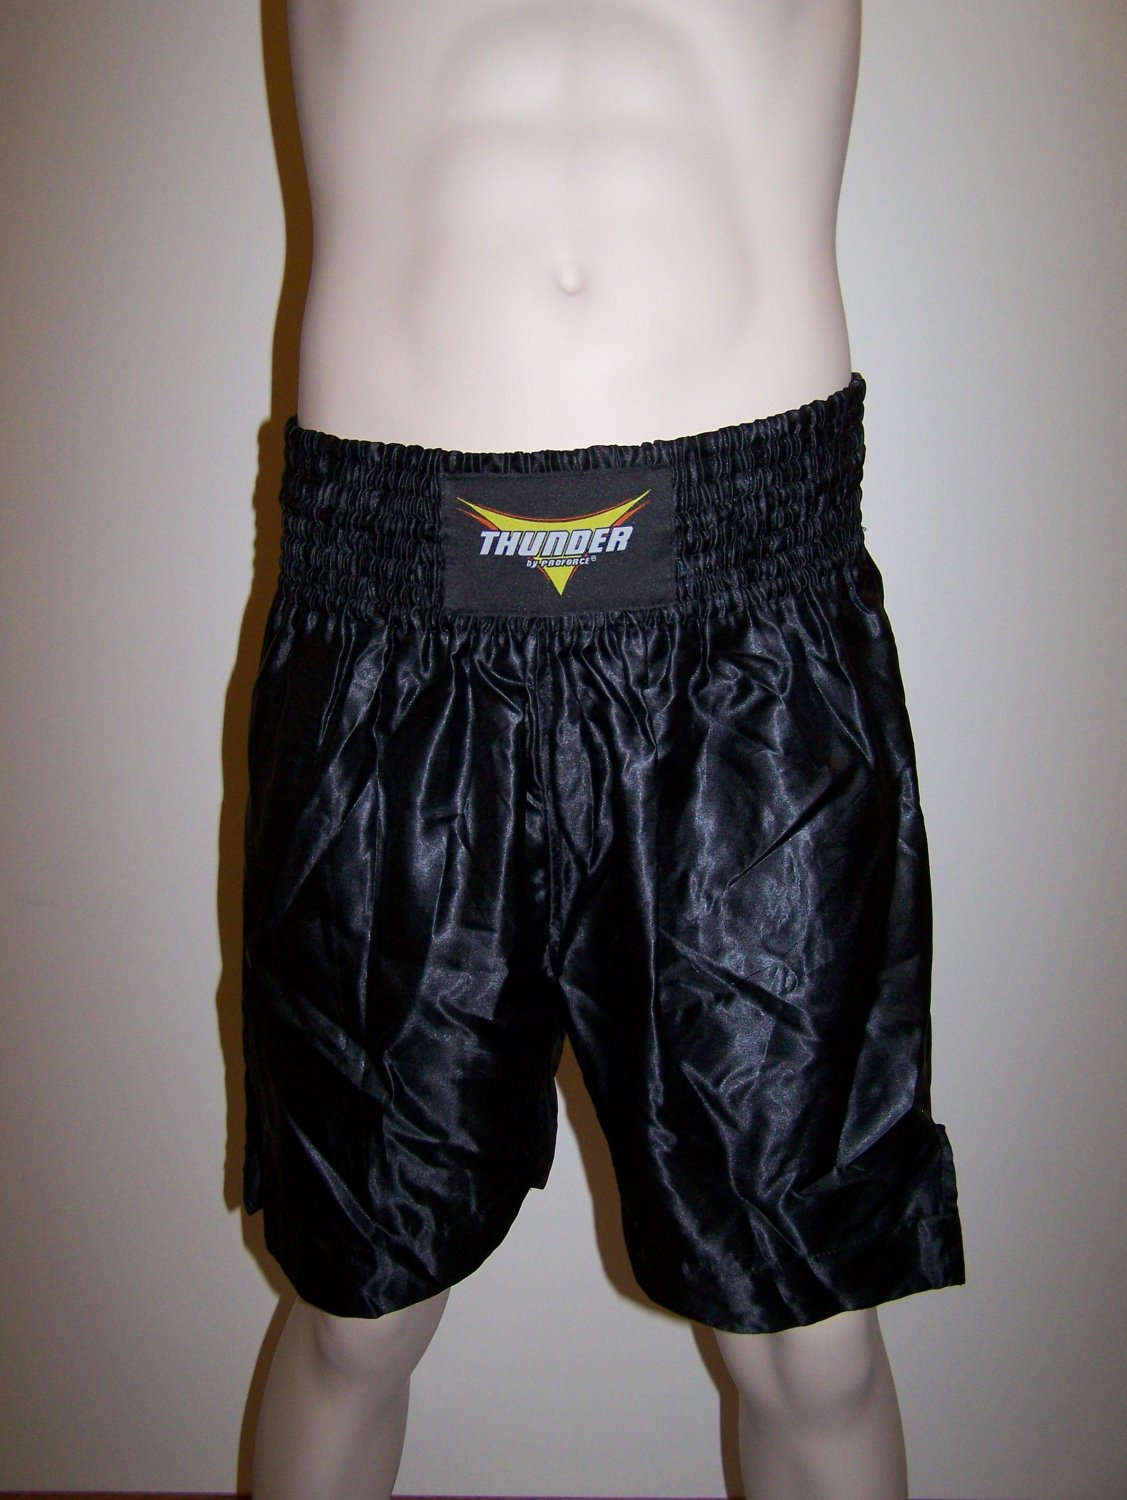 THUNDER - Boxing / MMA Shorts - Black - Small